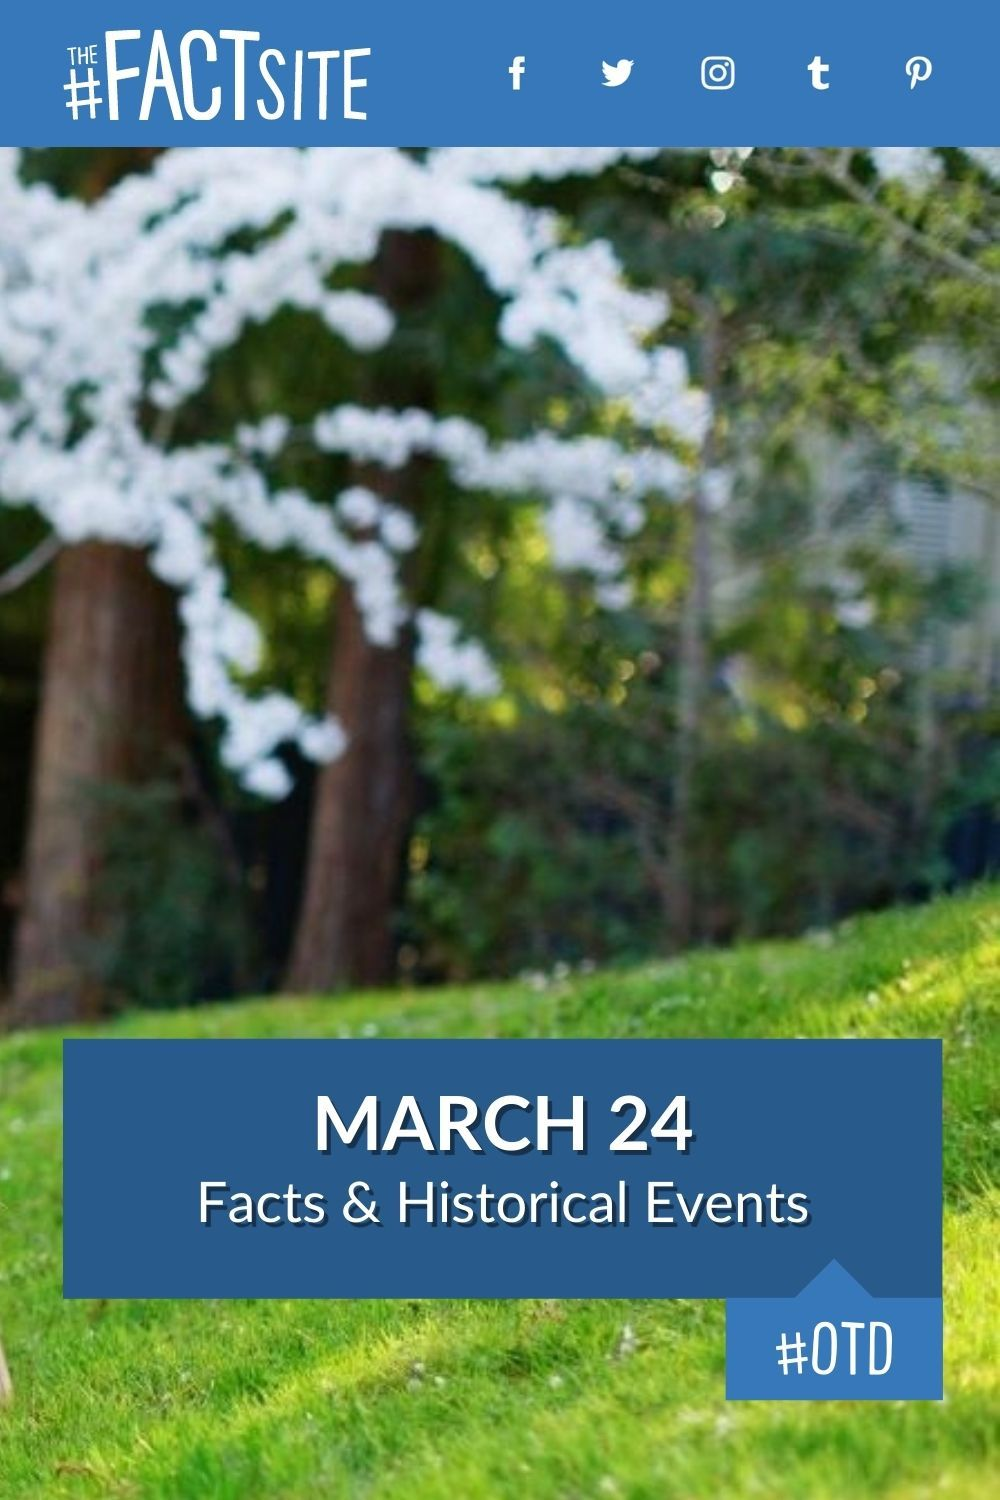 Facts & Historic Events That Happened on March 24